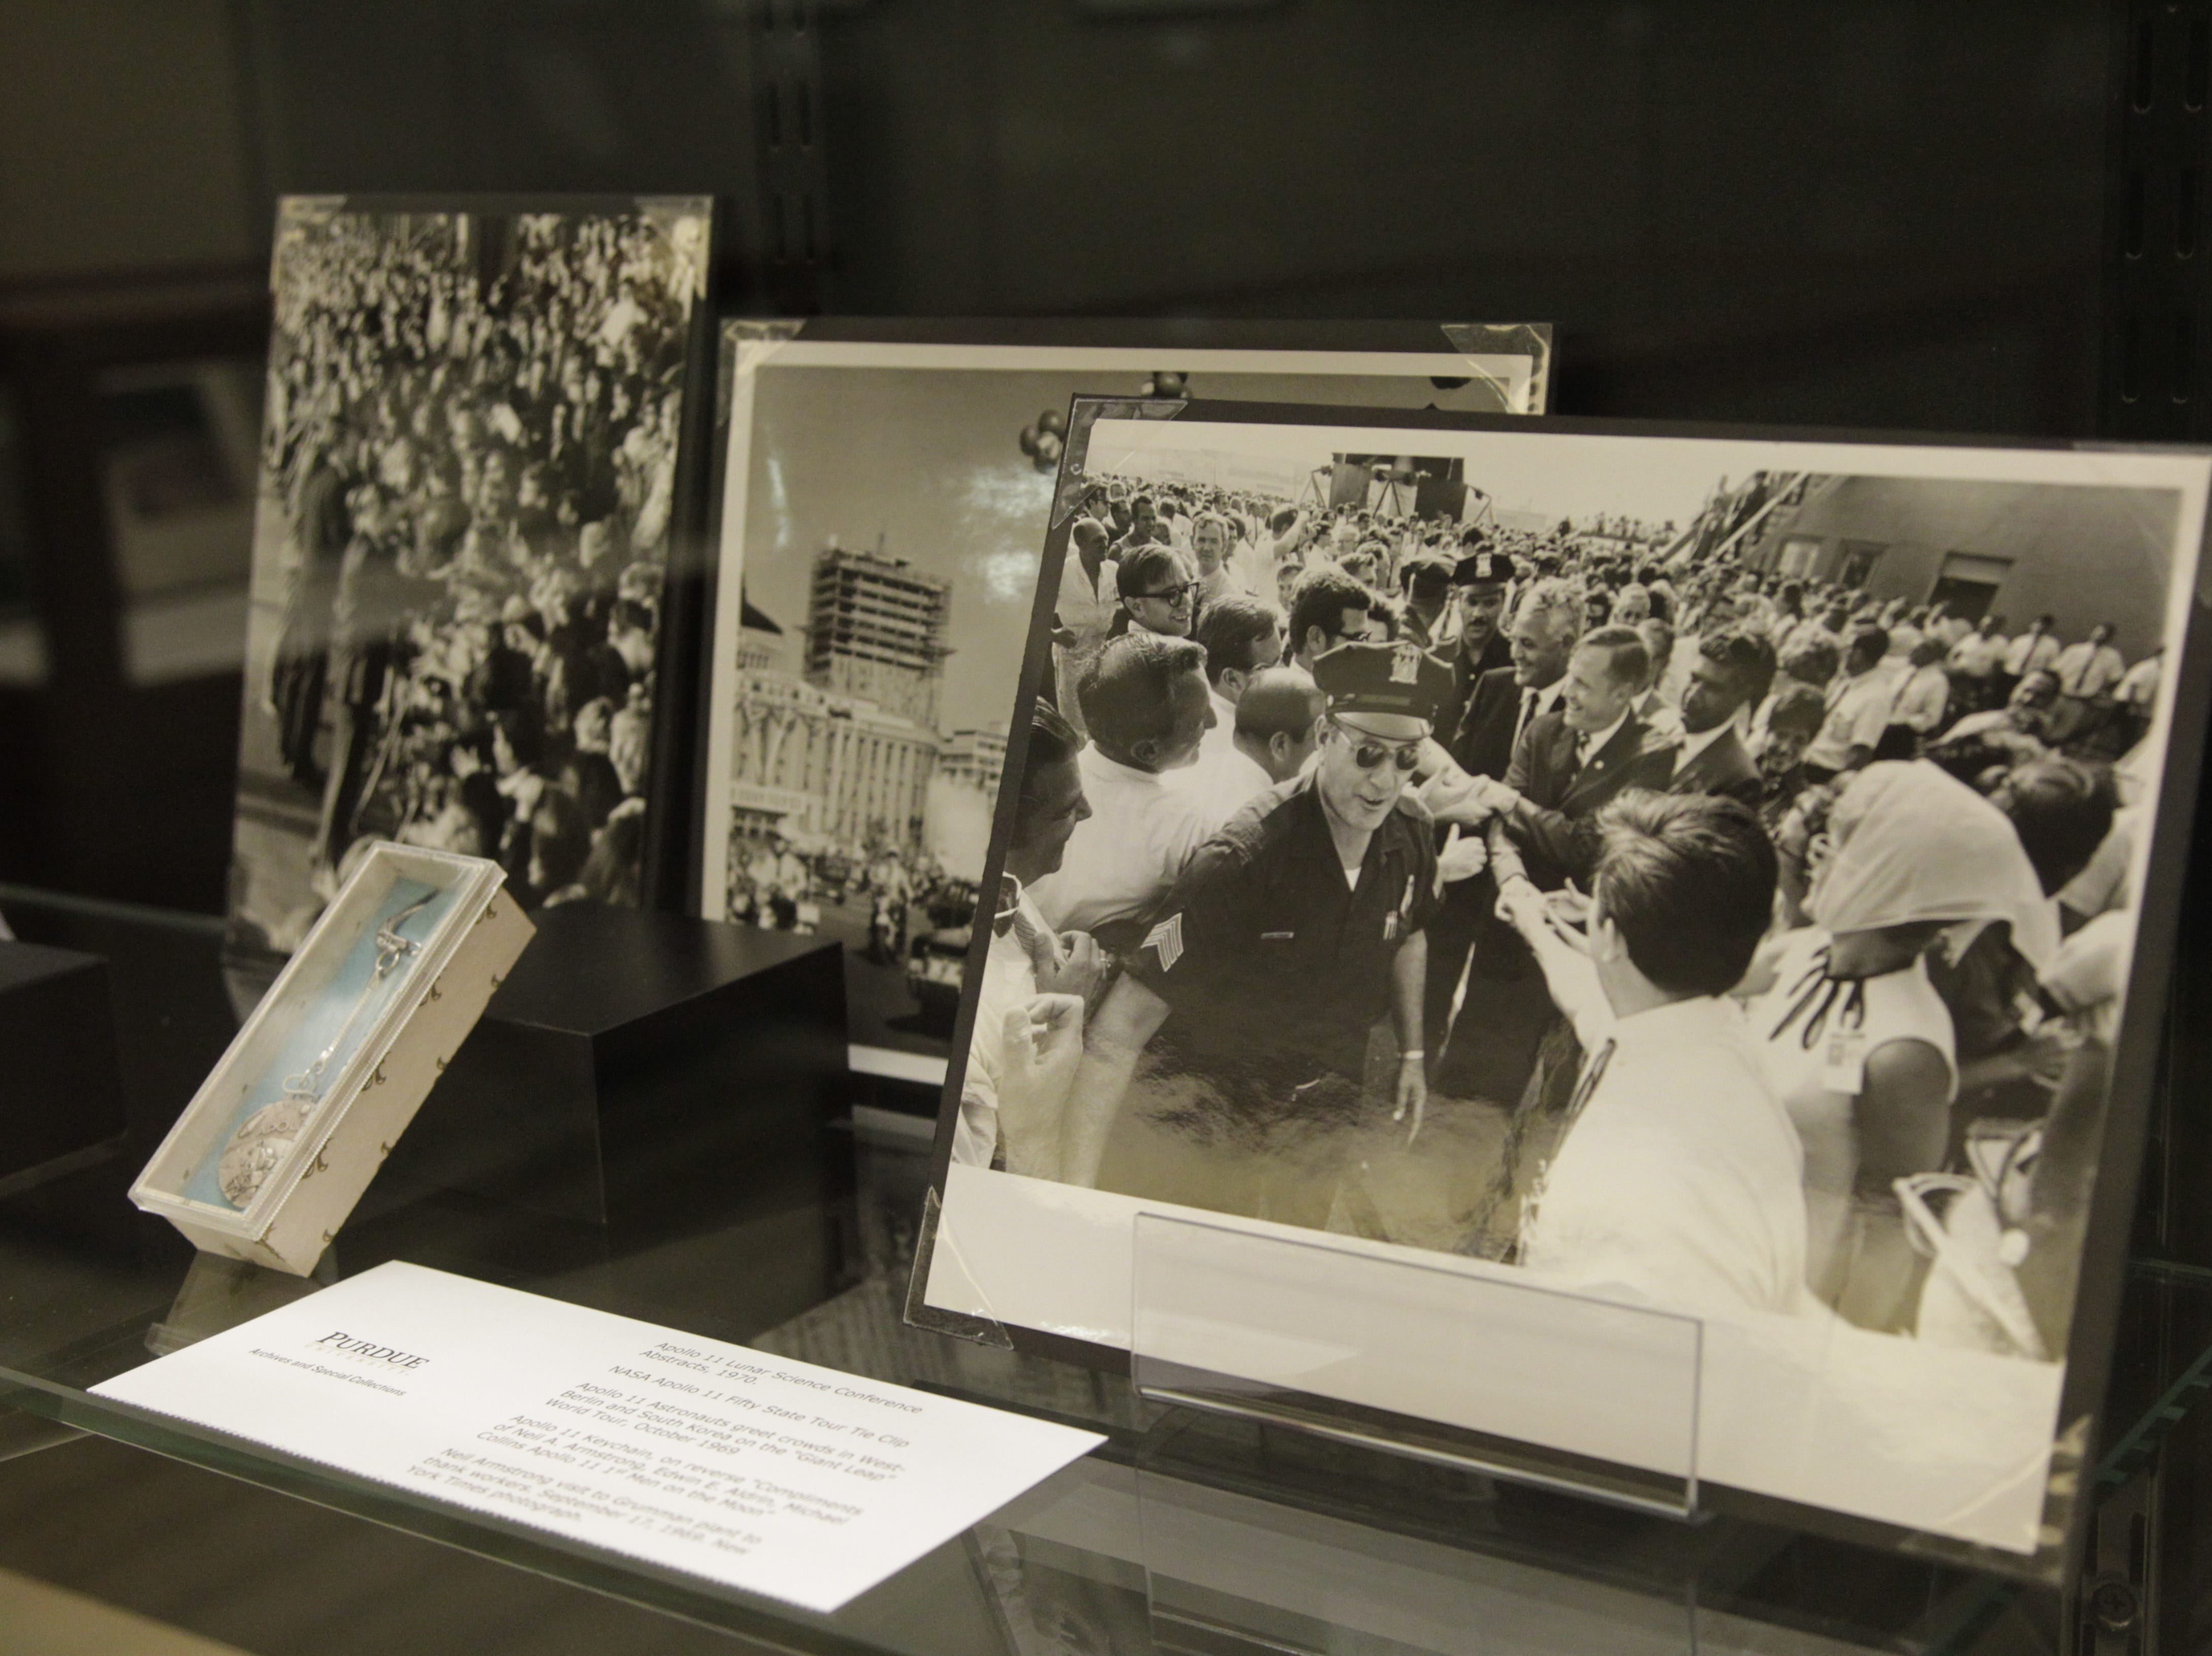 Grimm included many photos of Armstrong meeting fans as well as his written responses to fan mail.